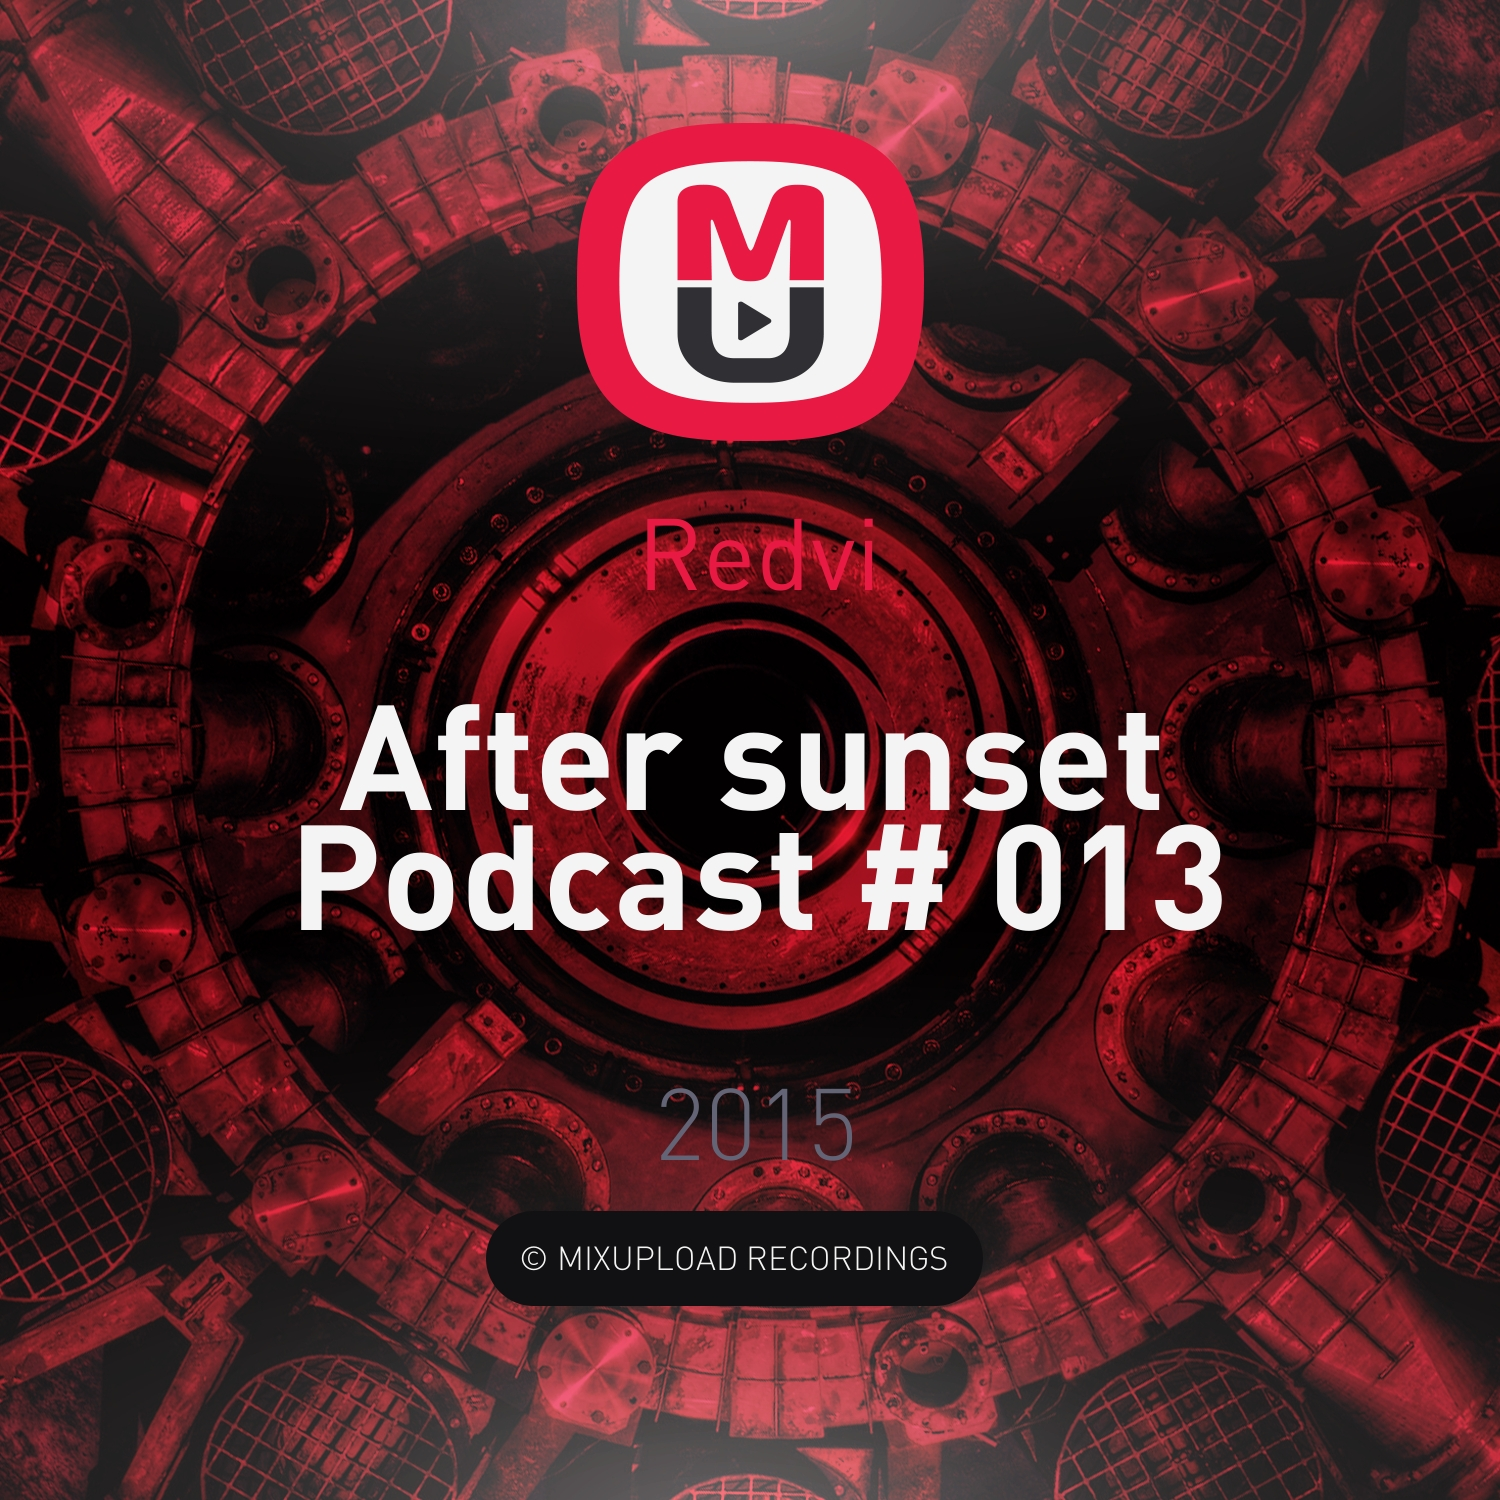 Redvi - After sunset Podcast # 013 ()